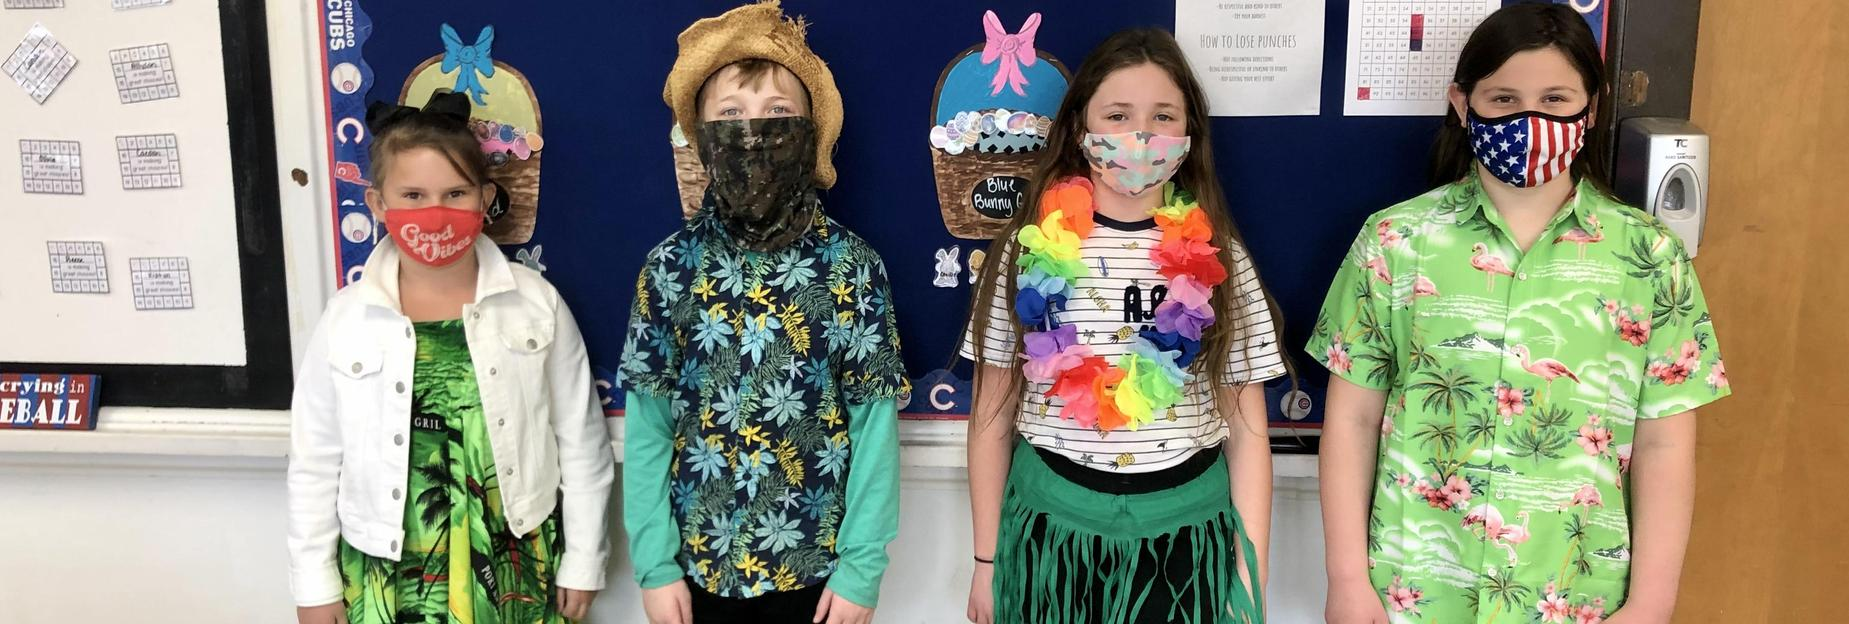 Dress up day at CCIS